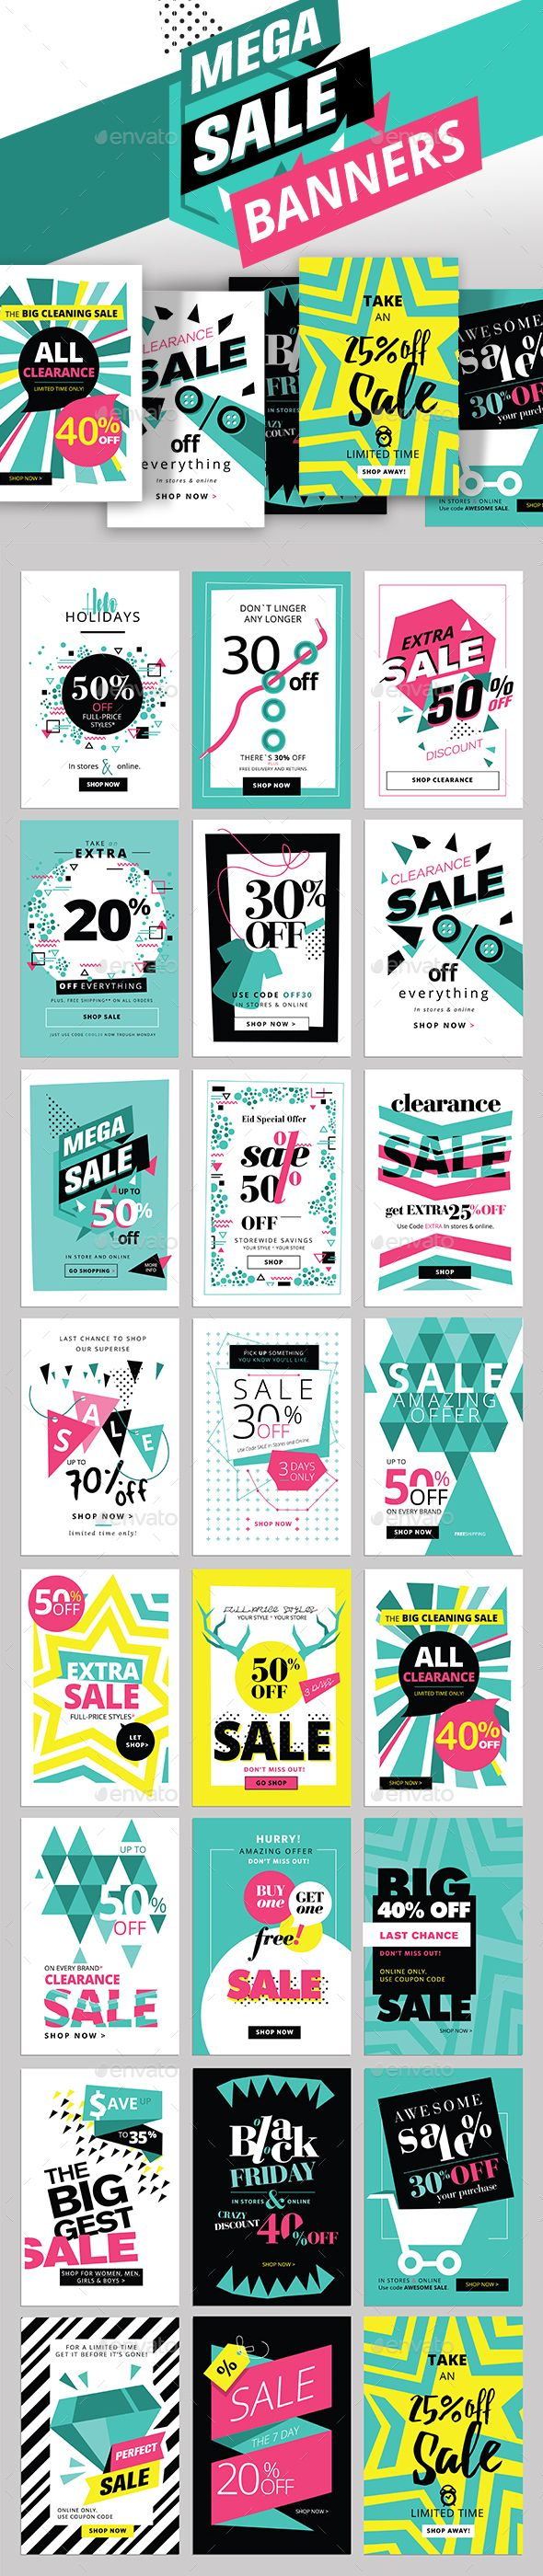 Mega Sale Banners Template PSD, Transparent PNG, Vector EPS, AI Illustrator